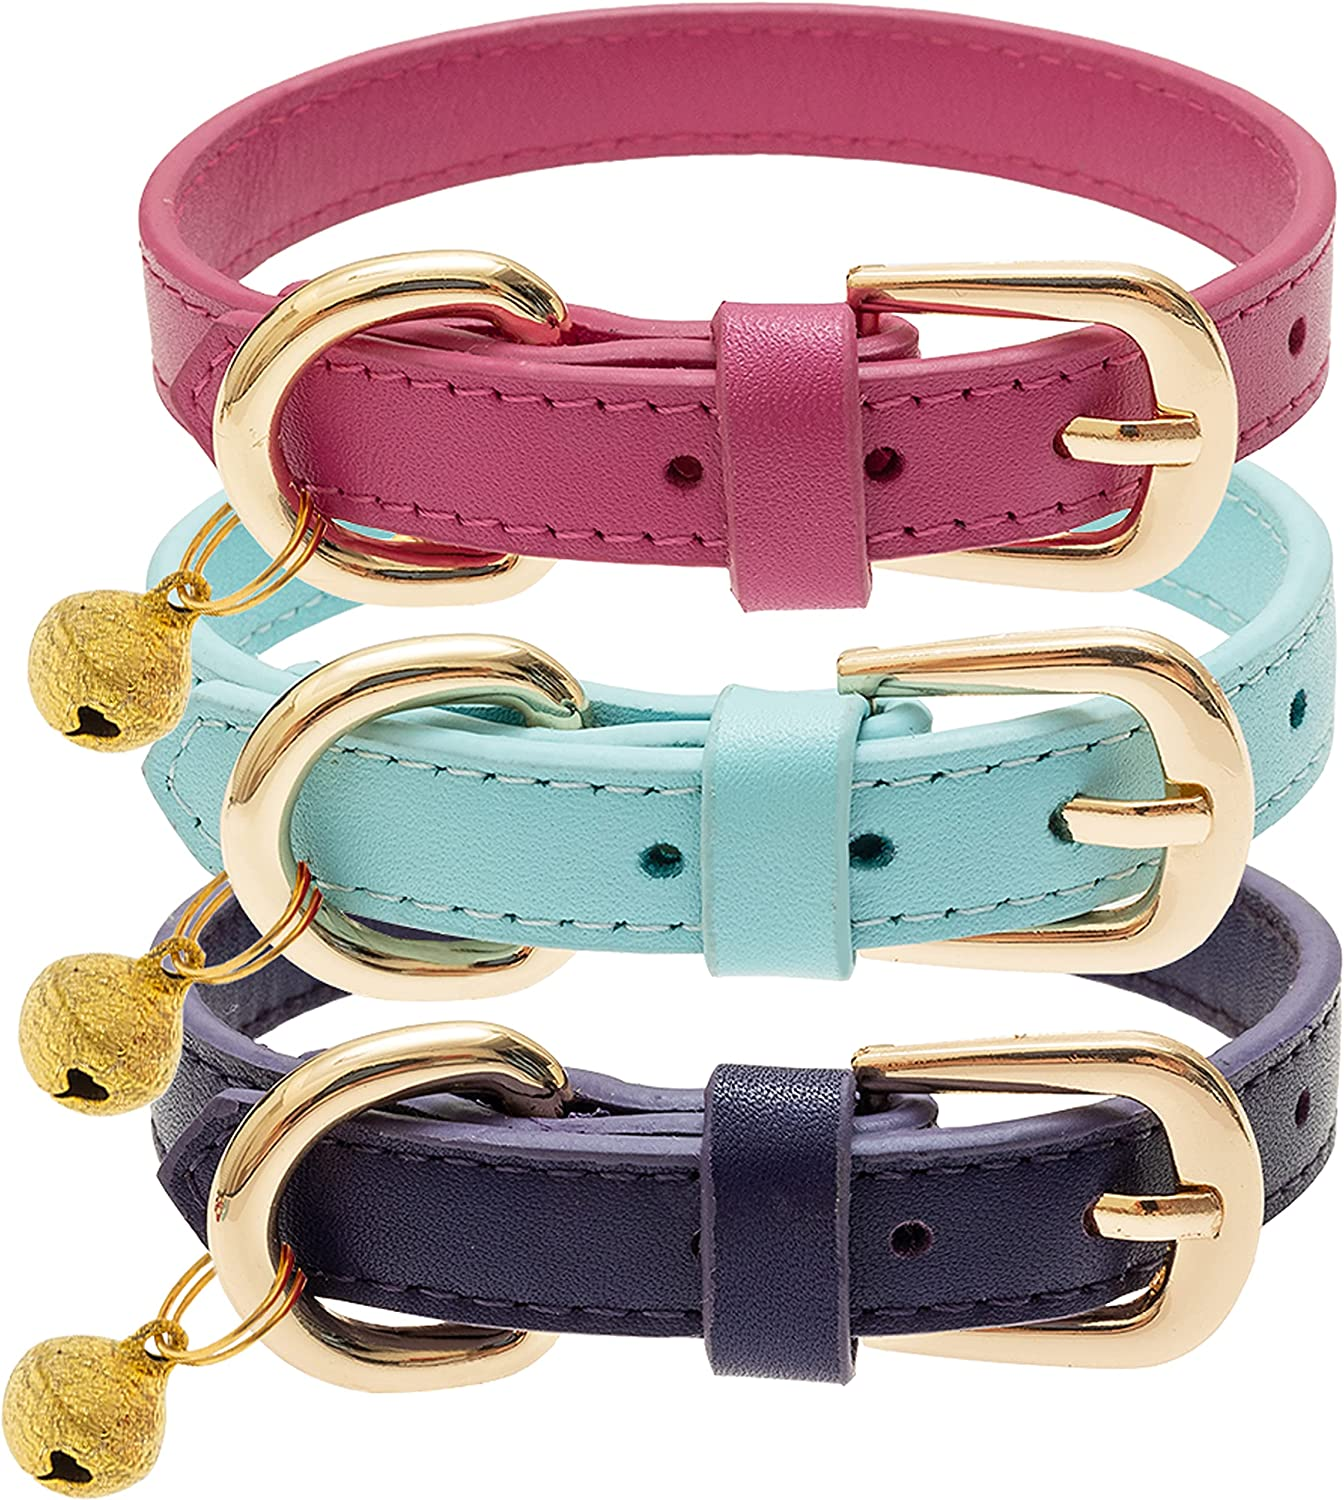 Free shipping on posting reviews FLYSTAR Cat Collar with Bell Leather Sale special price Adsjutable Soft